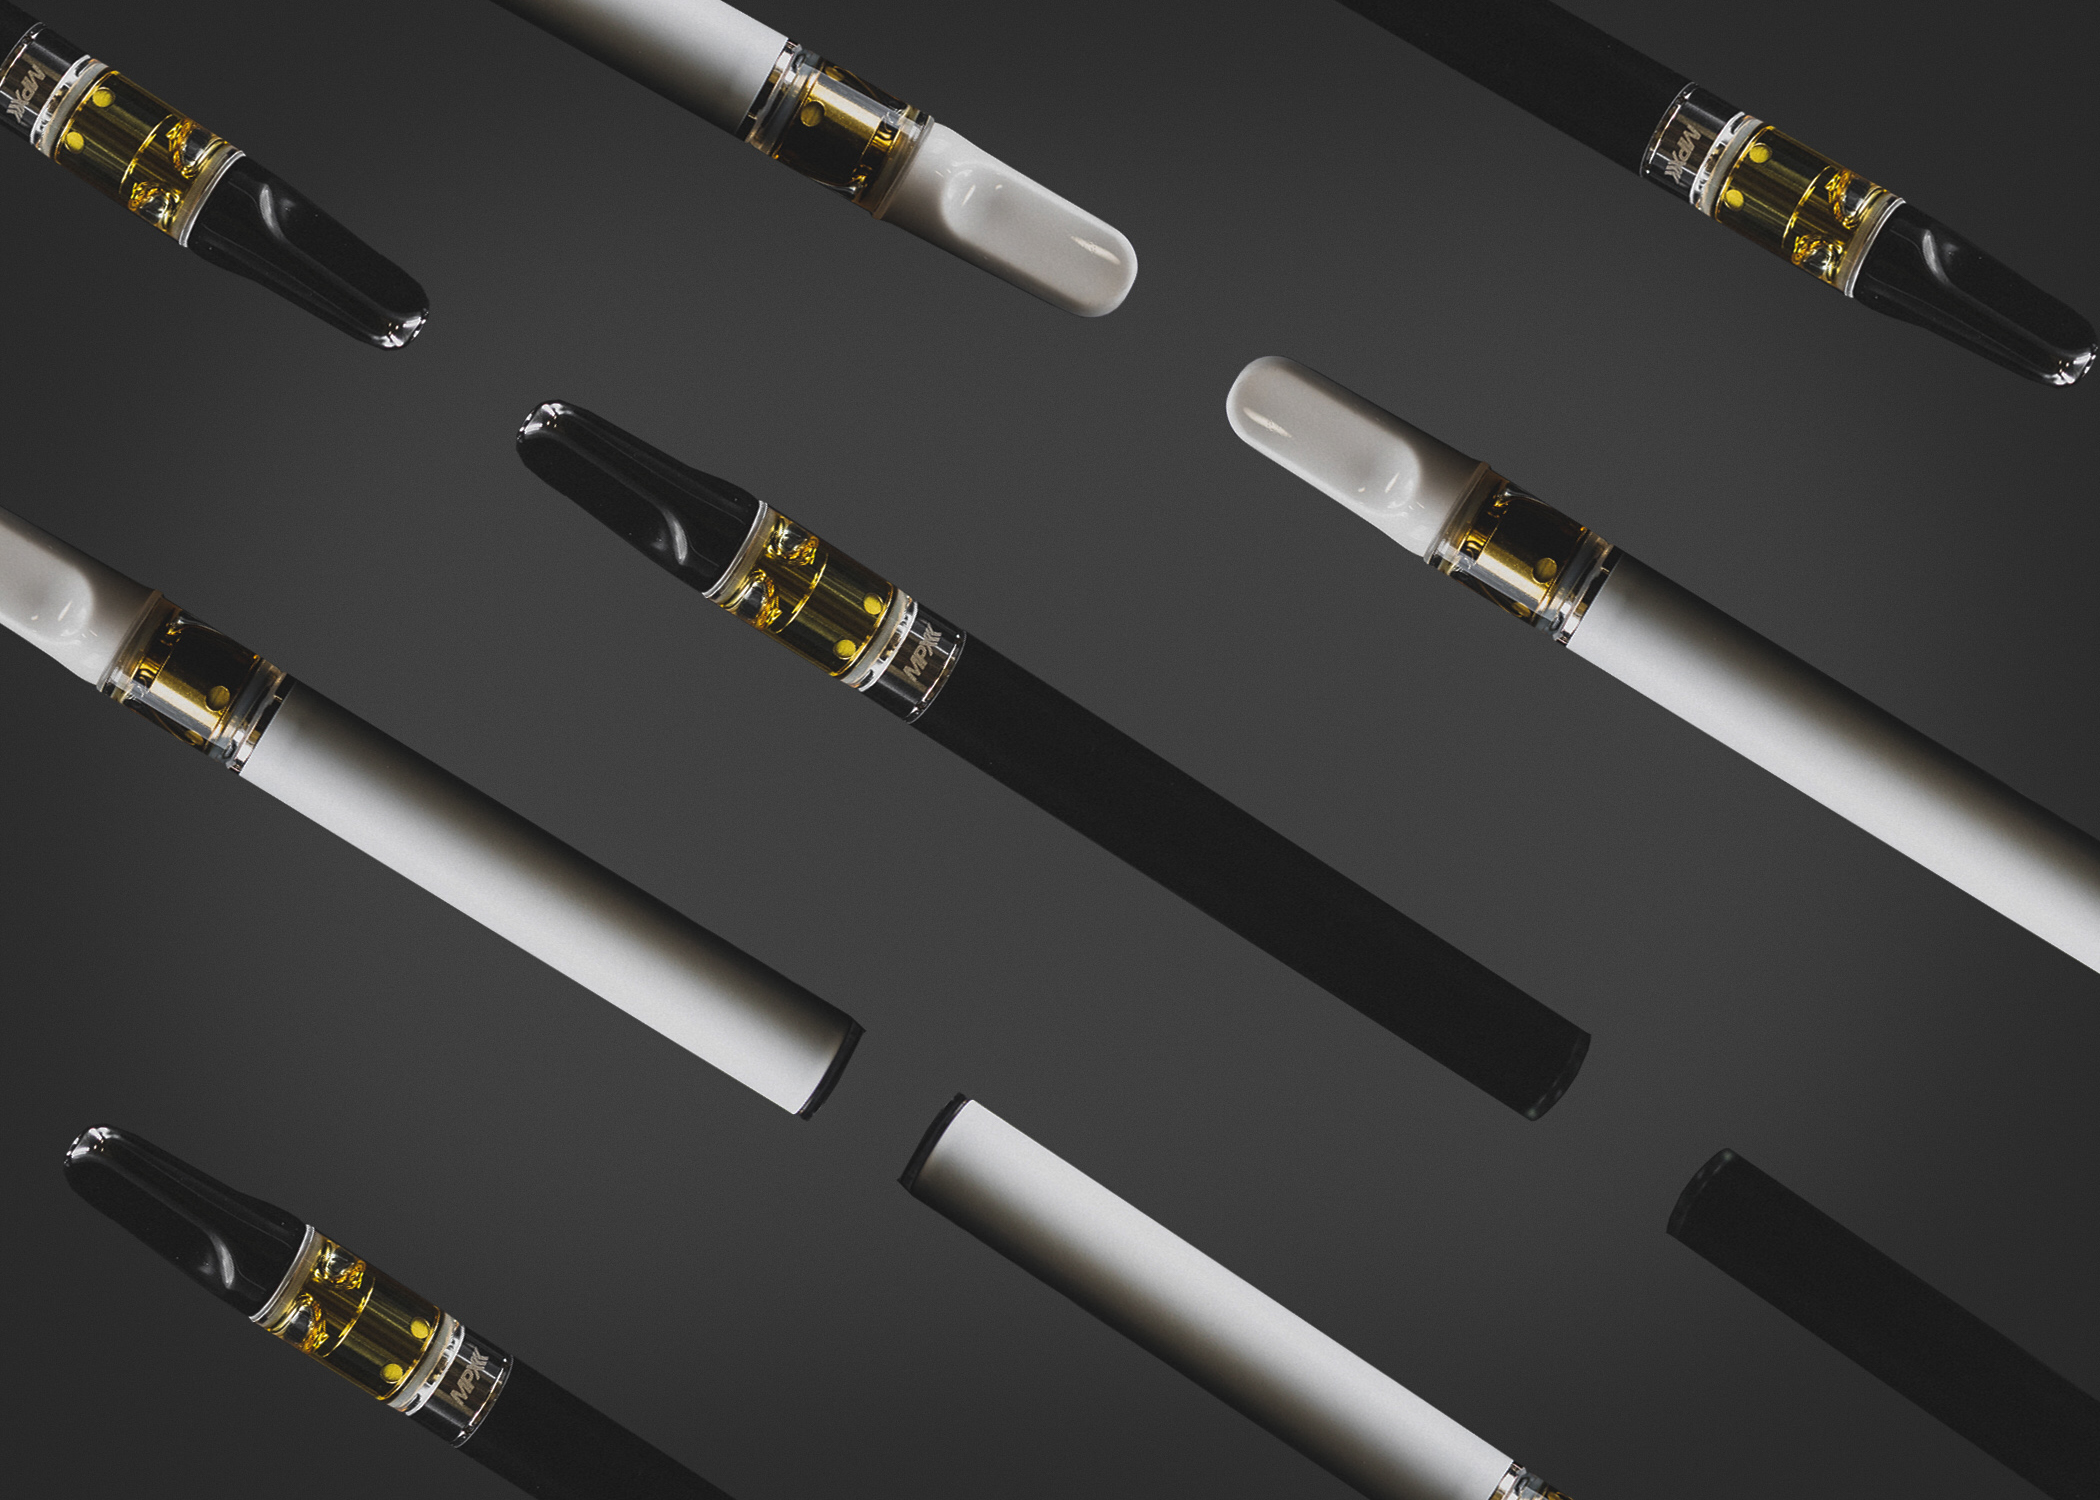 MPX Distillate Cartridges - Our Sativa Cartridges and Indica Cartridges are made with our high-quality, THC-rich distillate marijuana vape oil. We do not use any artificial ingredients or flavors. We infuse strain specific, all-natural terpenes for a modulating and palatable experience.We use exclusively CCELL technology that is made of glass which offers the highest quality components for maximum compatibility with all of our products. We currently offer a 500mg distillate cartridge and a 300mg disposable distillate cart.